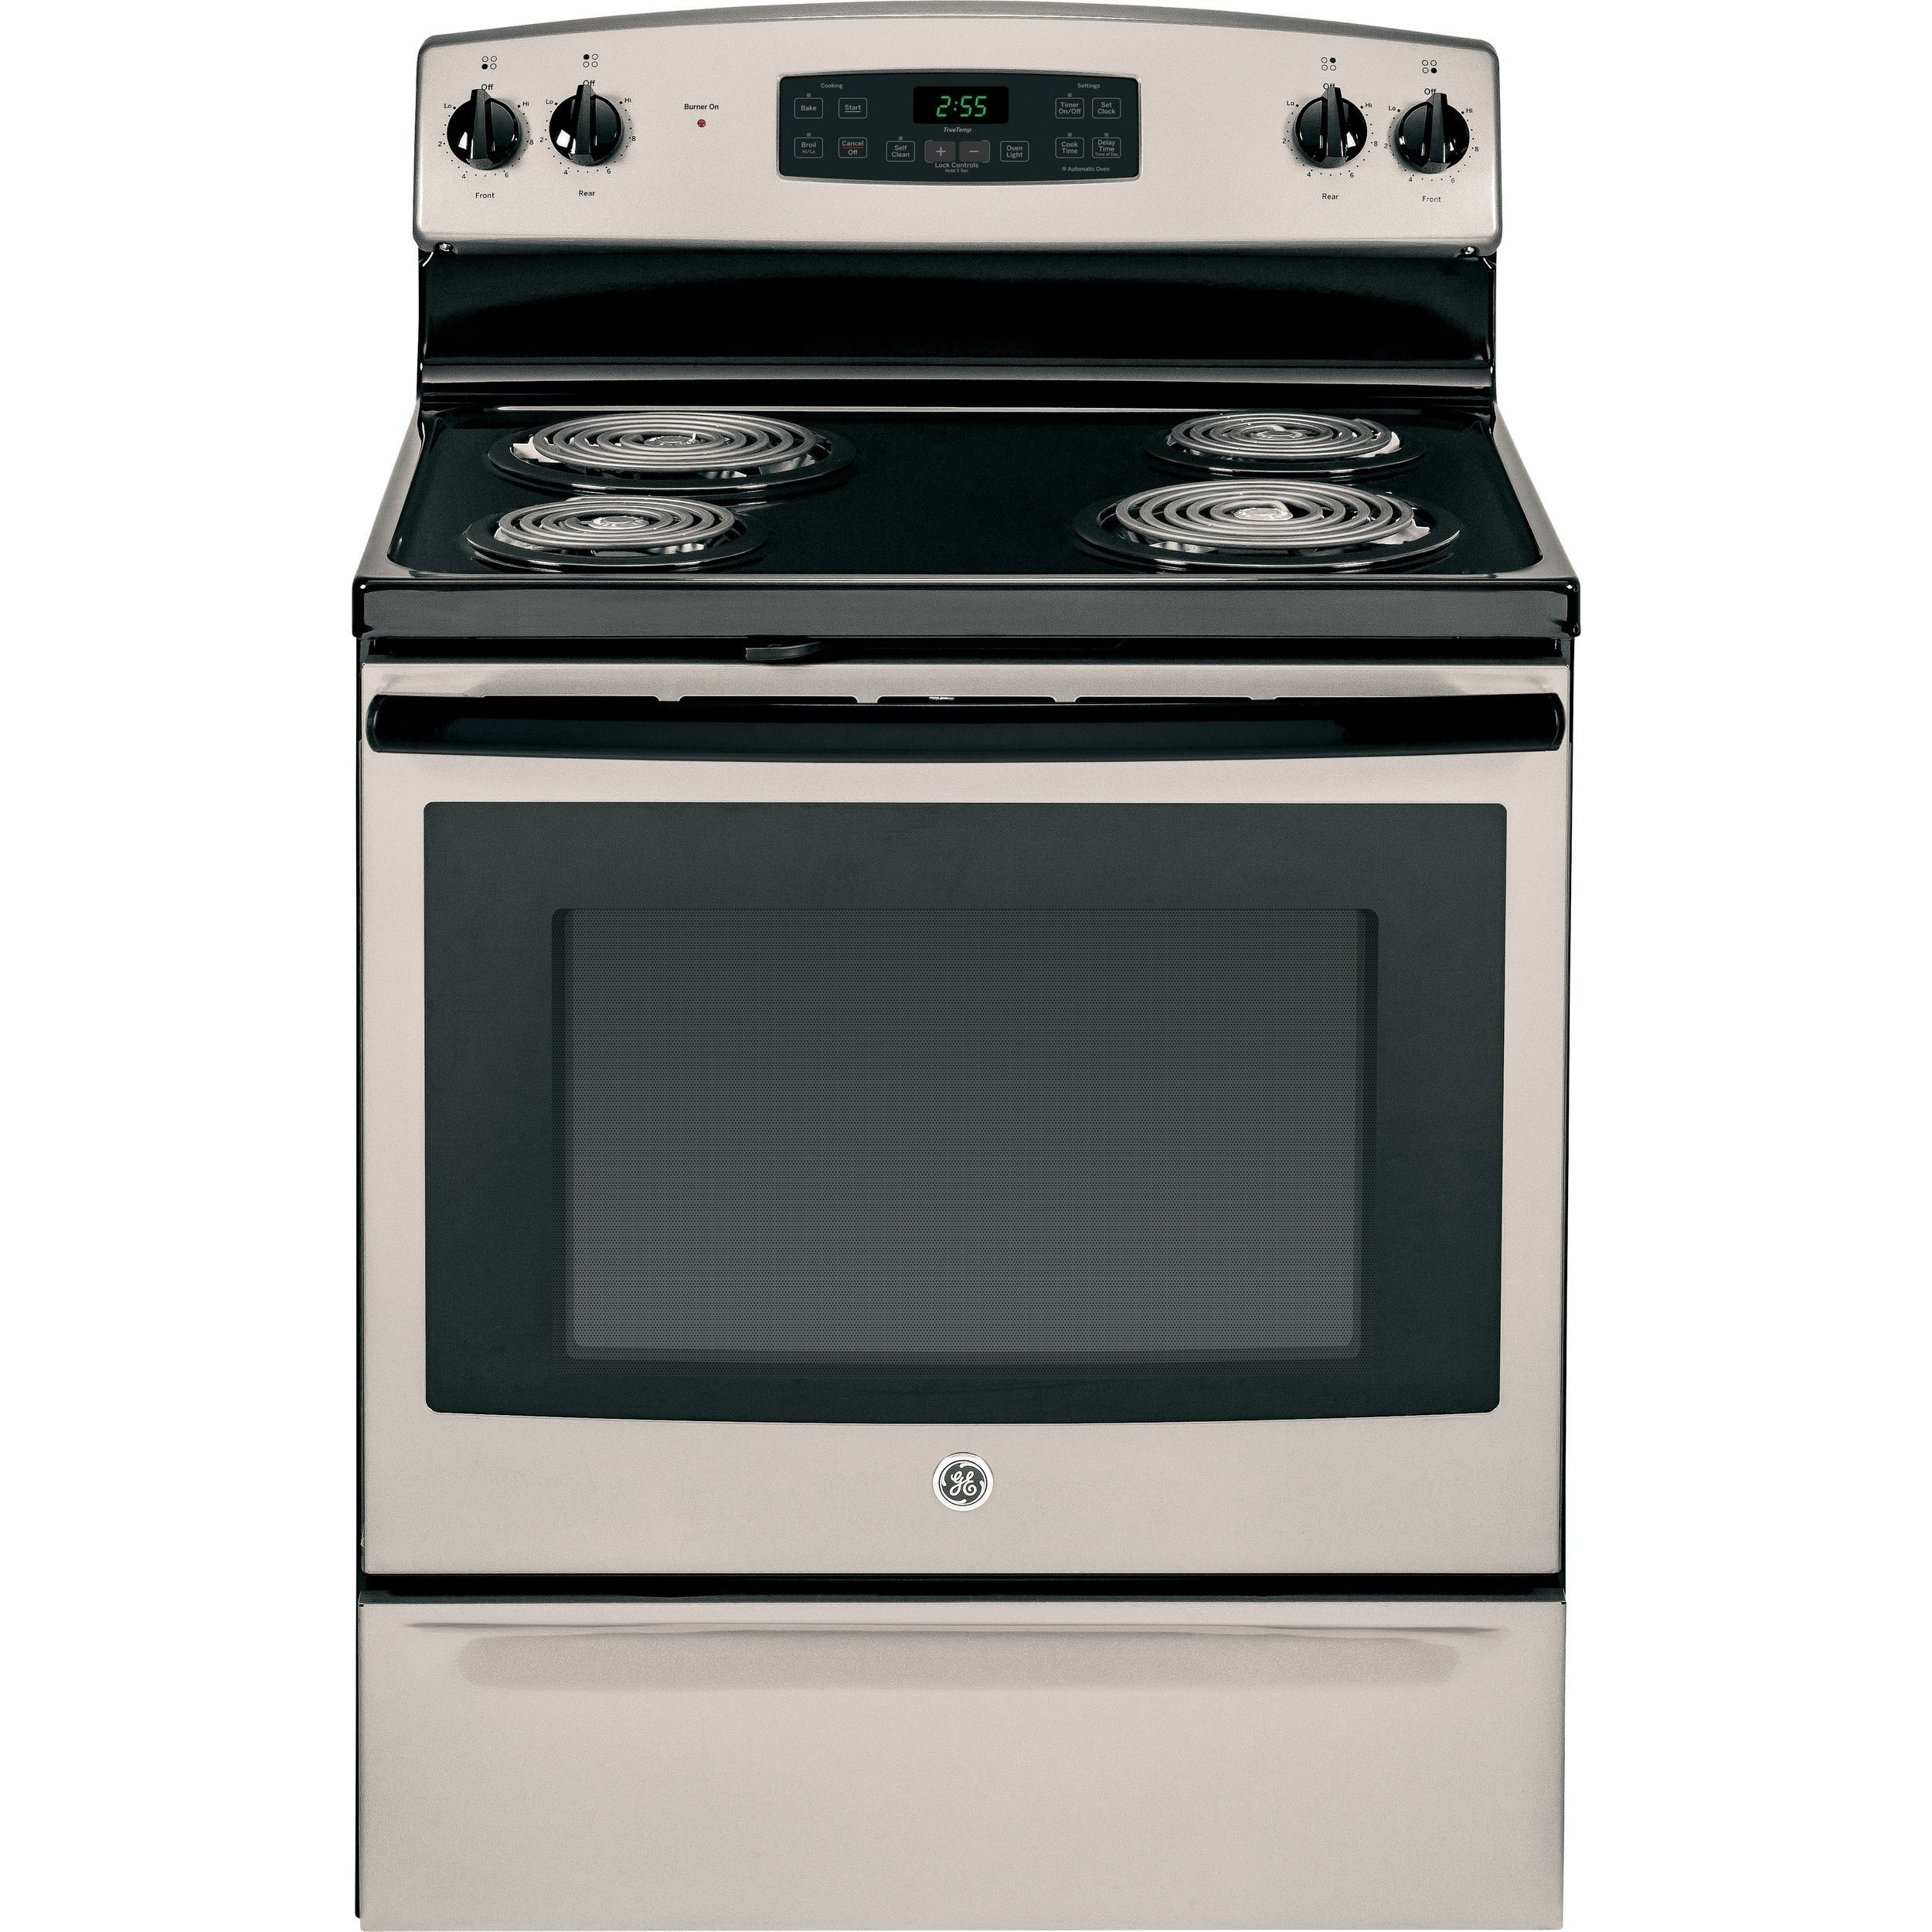 GE 30 IN Free Standing Electric Range with Coil Burners in Black White